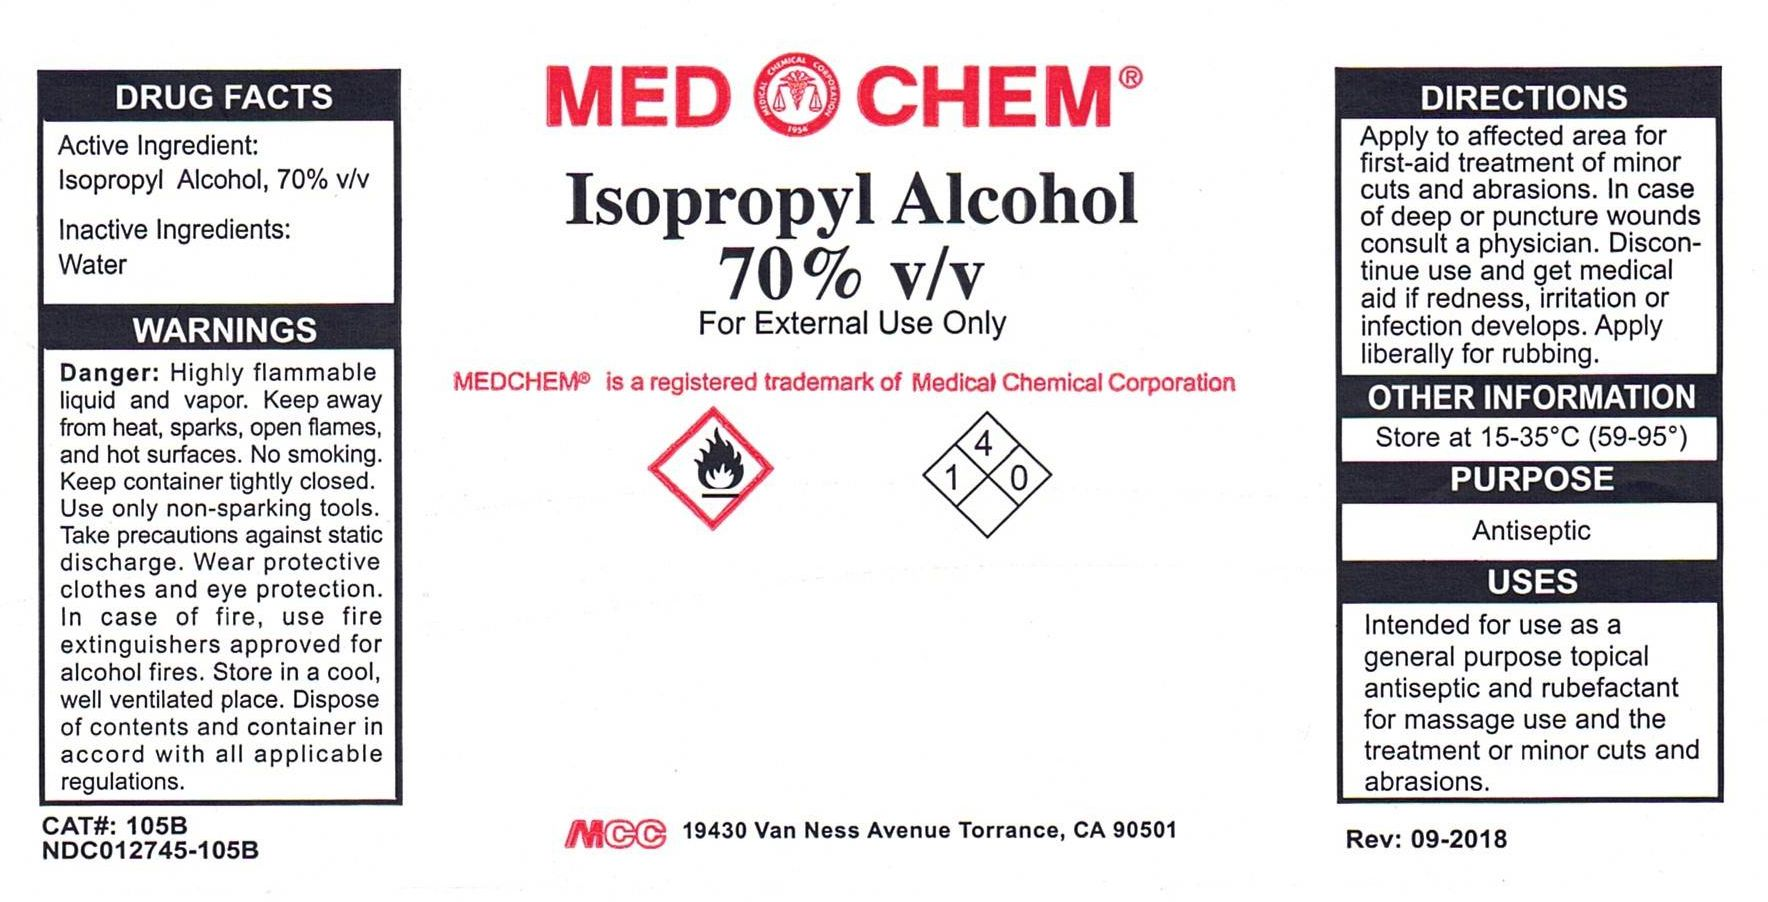 Isopropyl Alcohol Liquid [Medical Chemical Corporation]